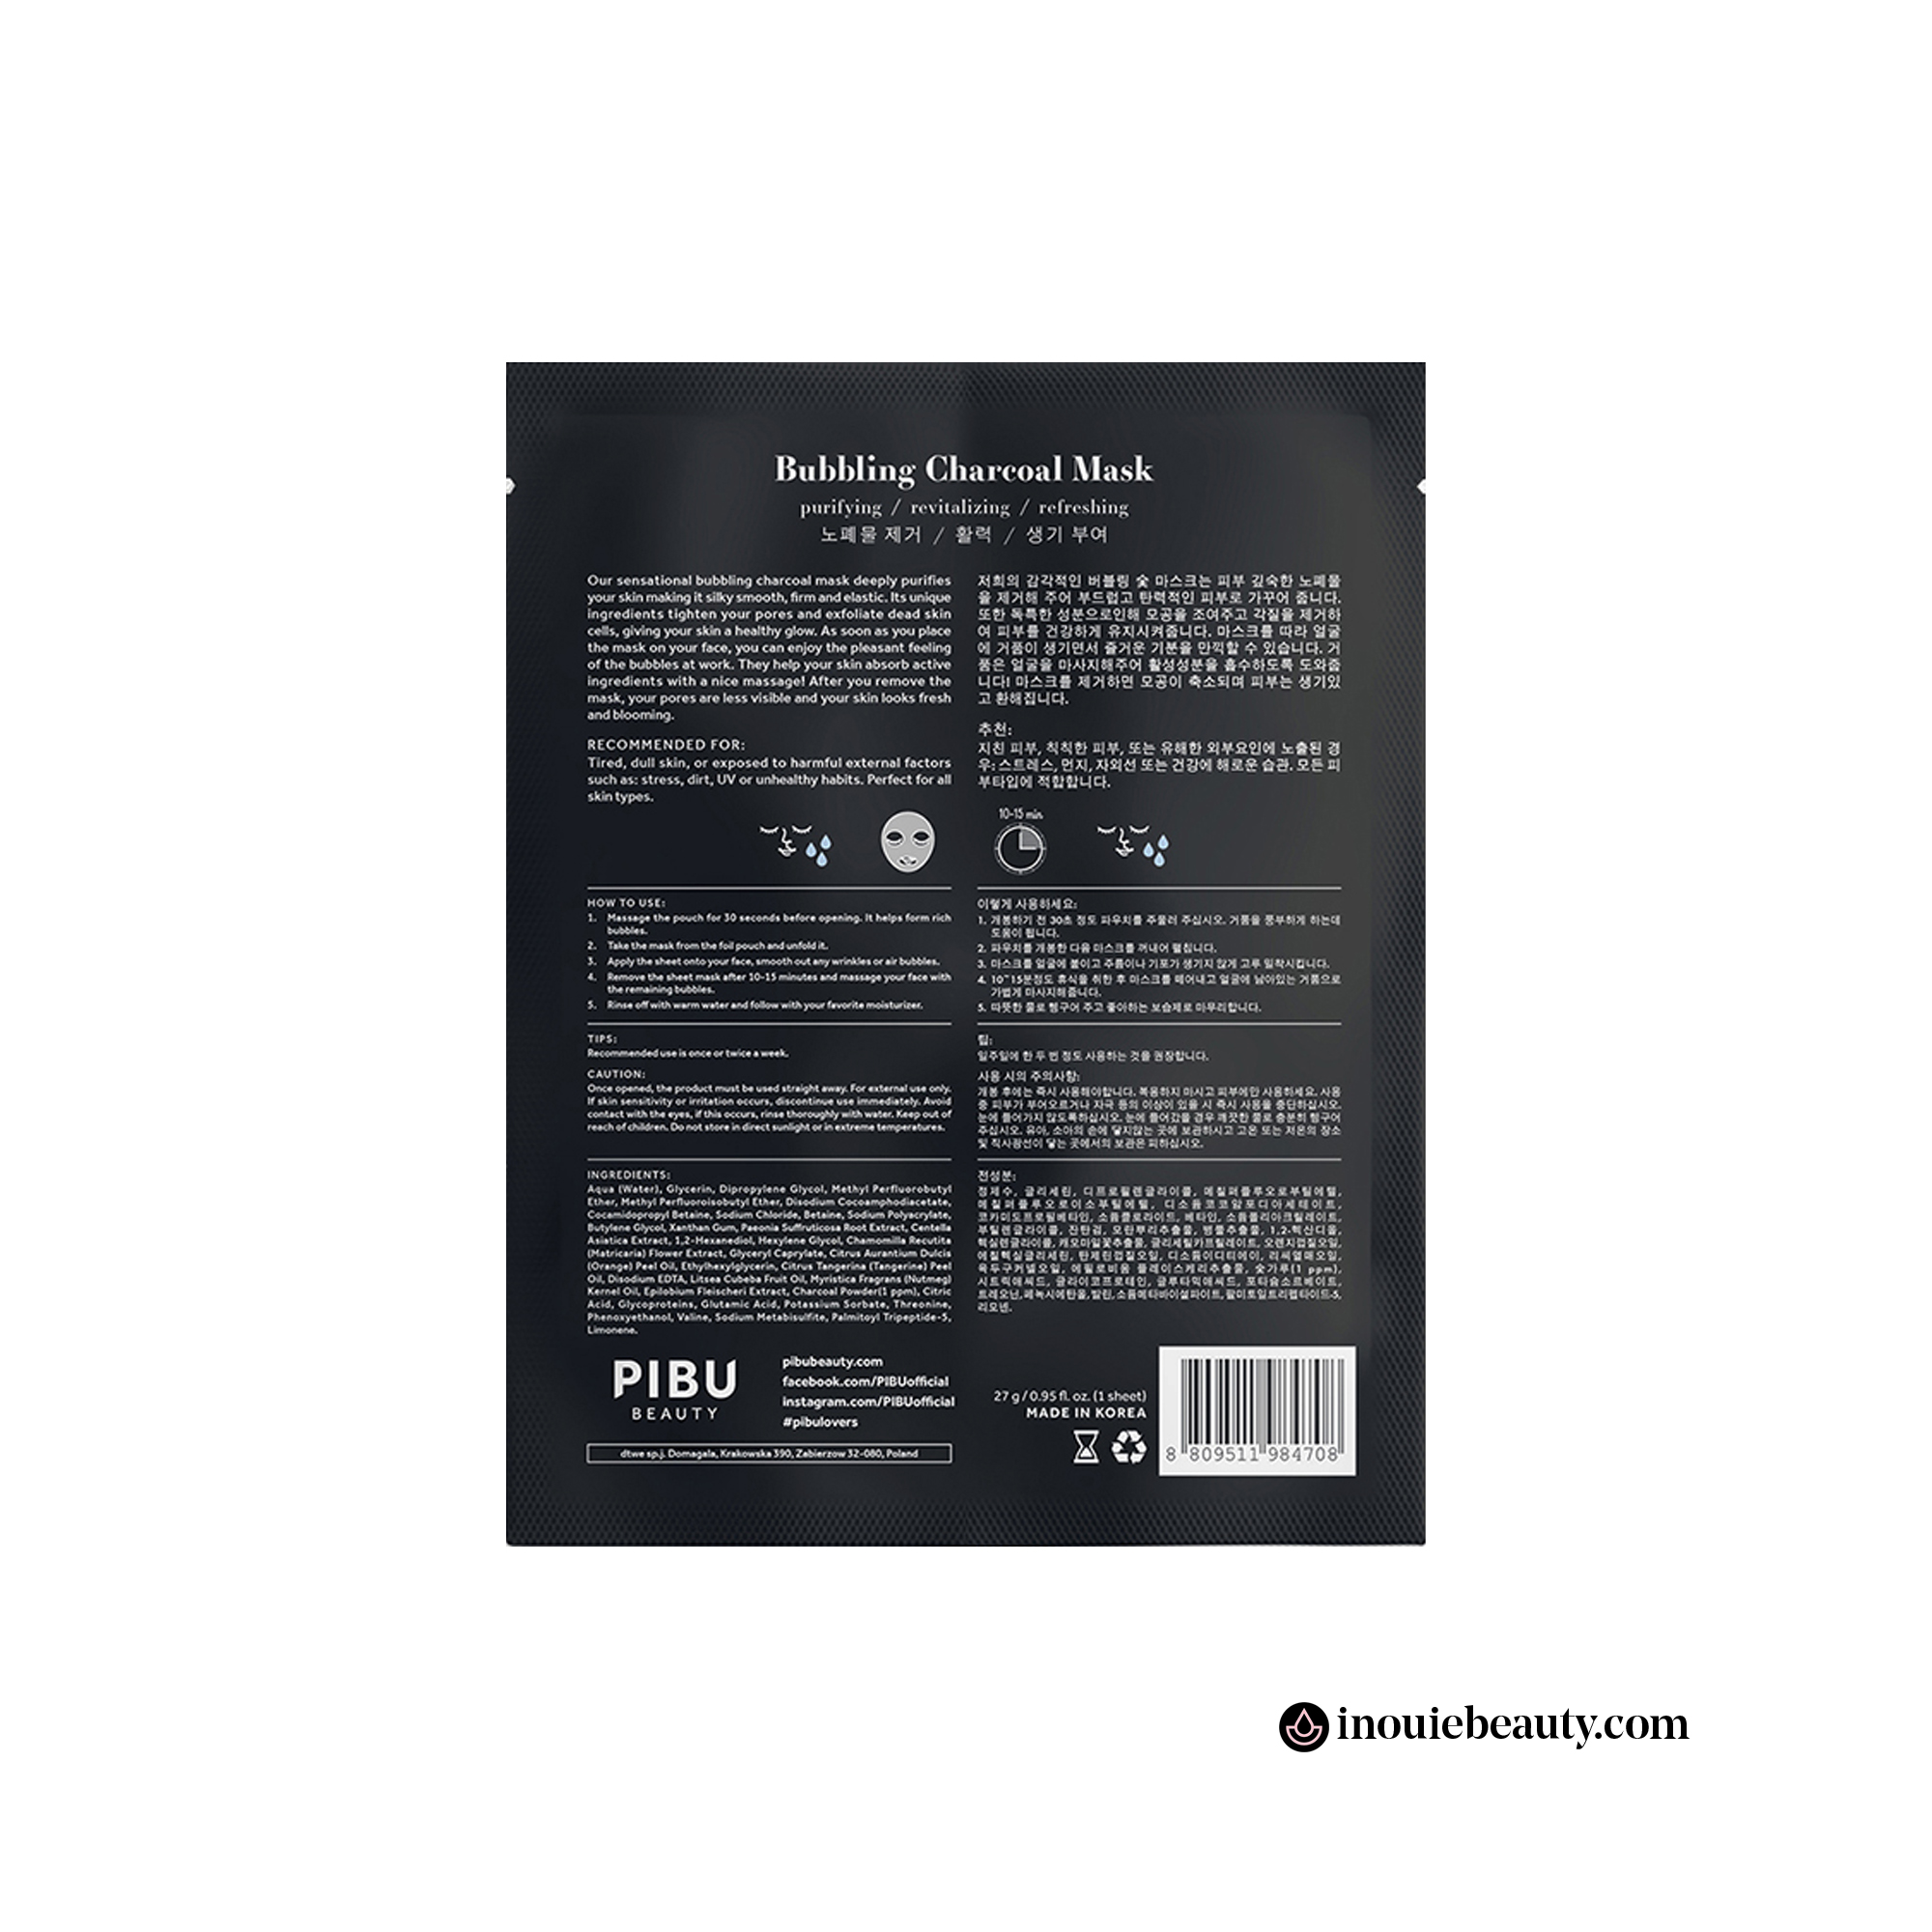 Pibu Beauty Bubbling Charcoal Mask